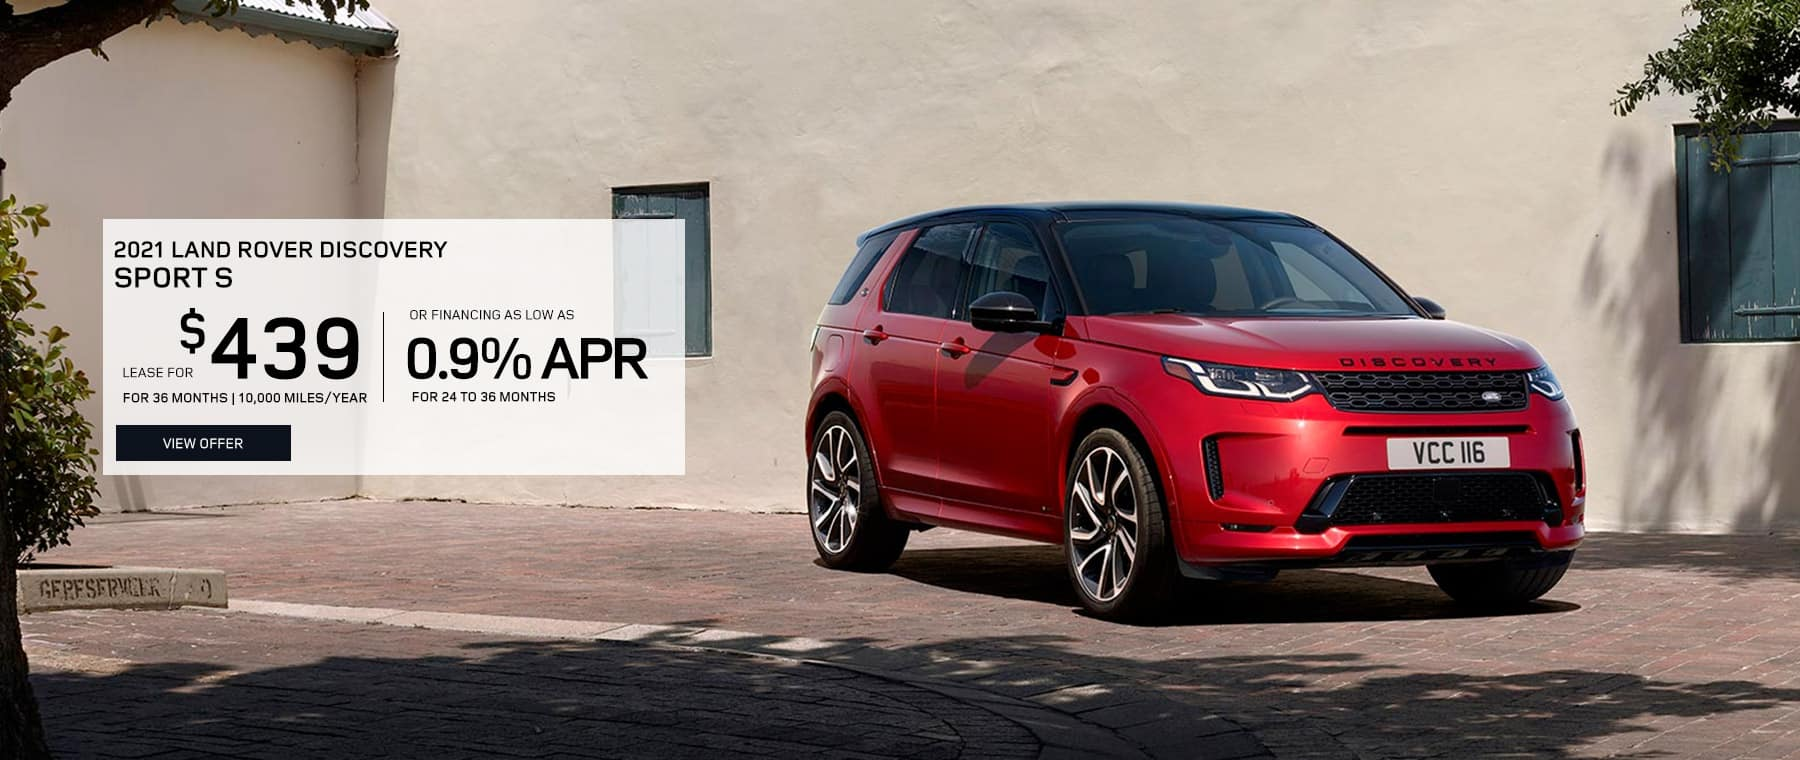 21-discovery-sport-april-2021